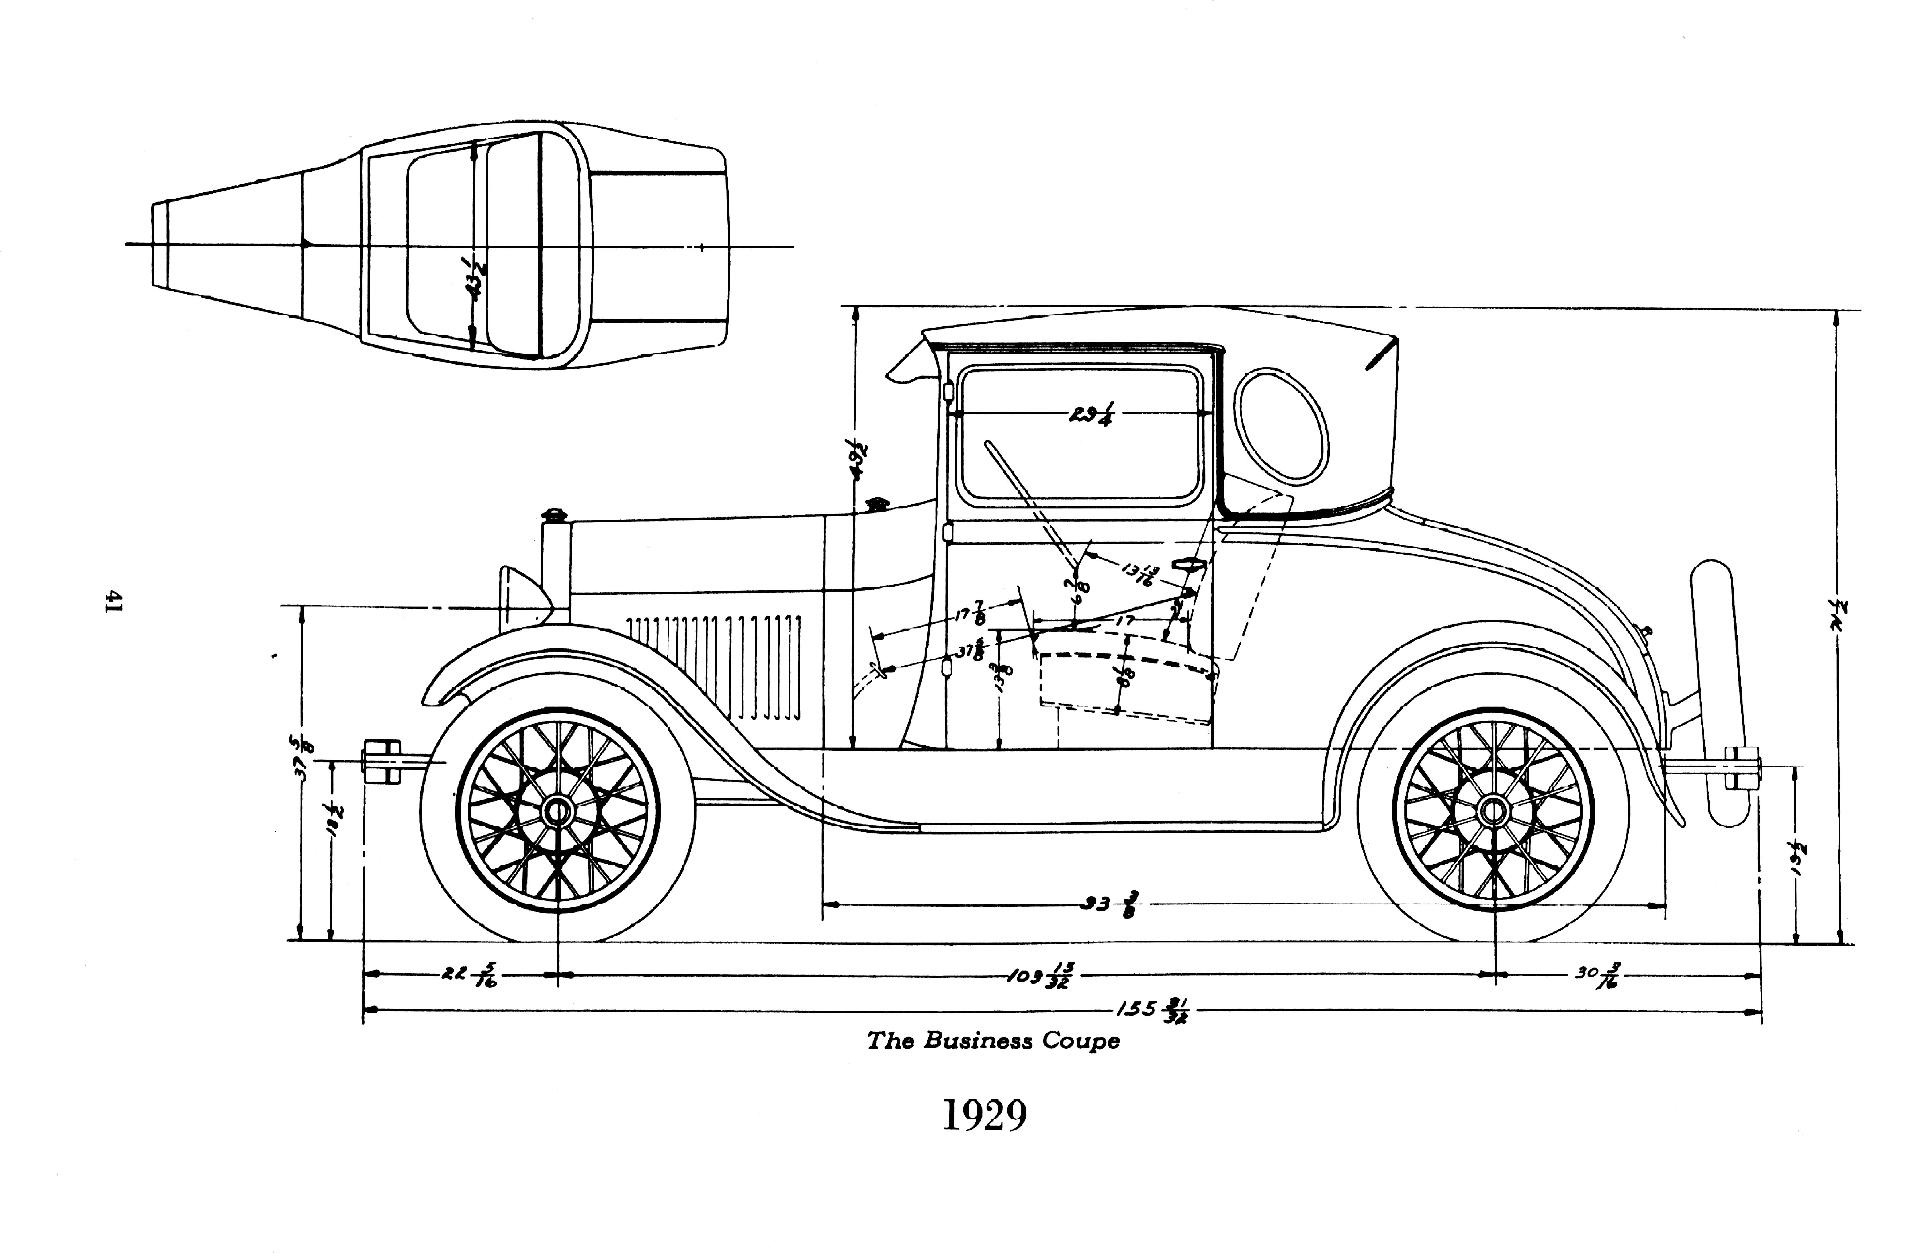 hight resolution of ford model a schematics wiring diagrams favorites ford model t schematics ford model a body dimensions